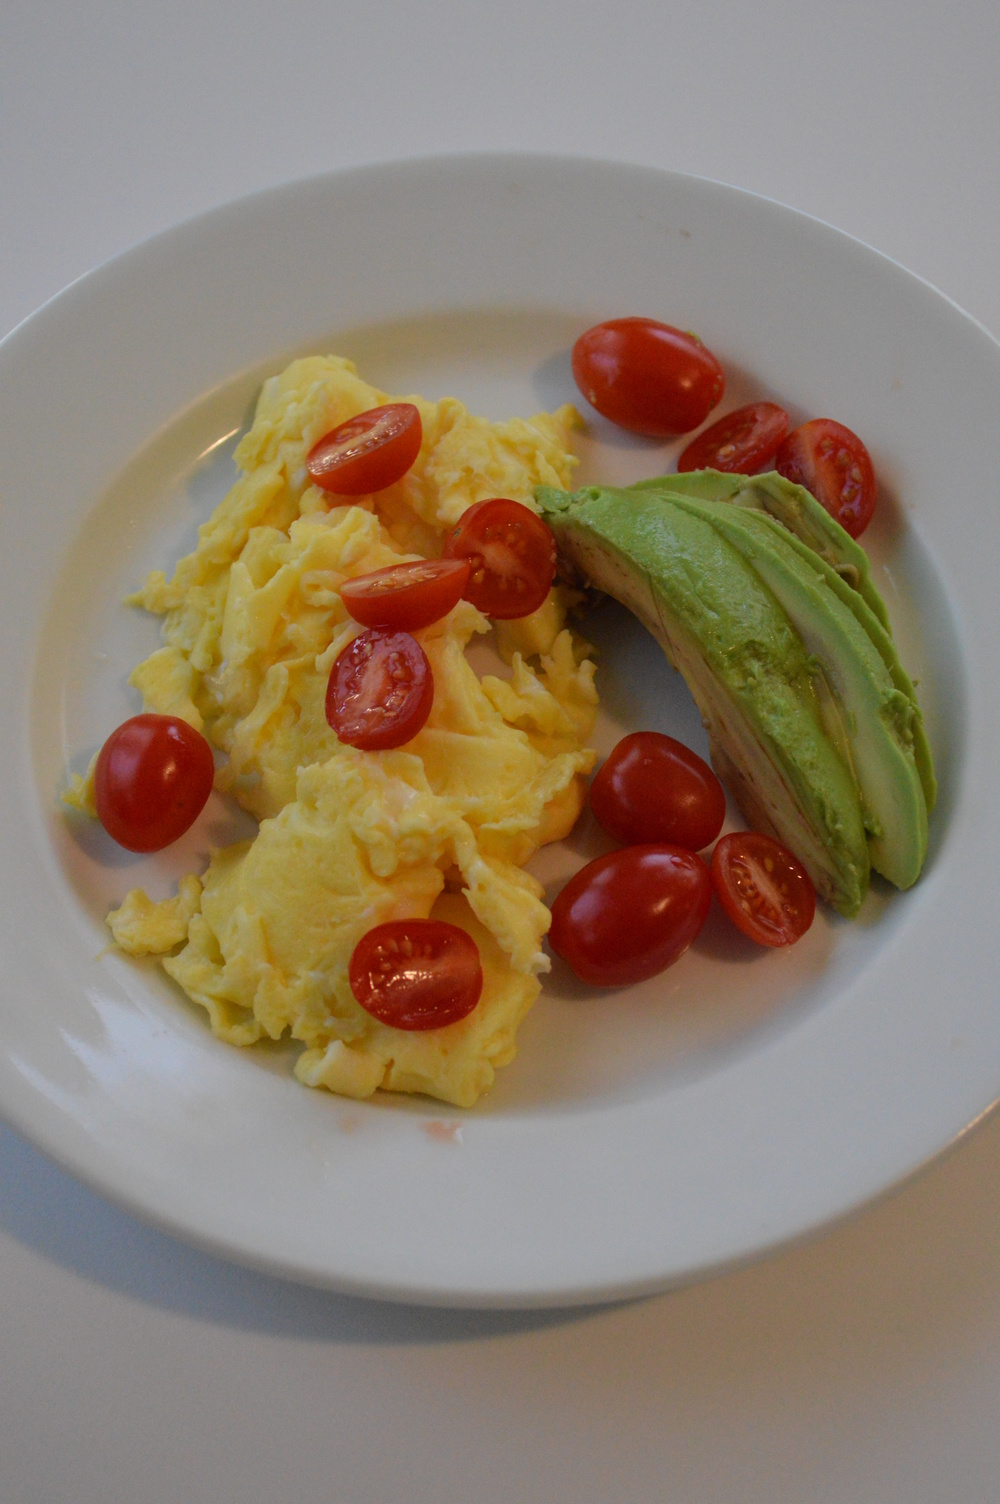 Eggs, Tomato, Avocado